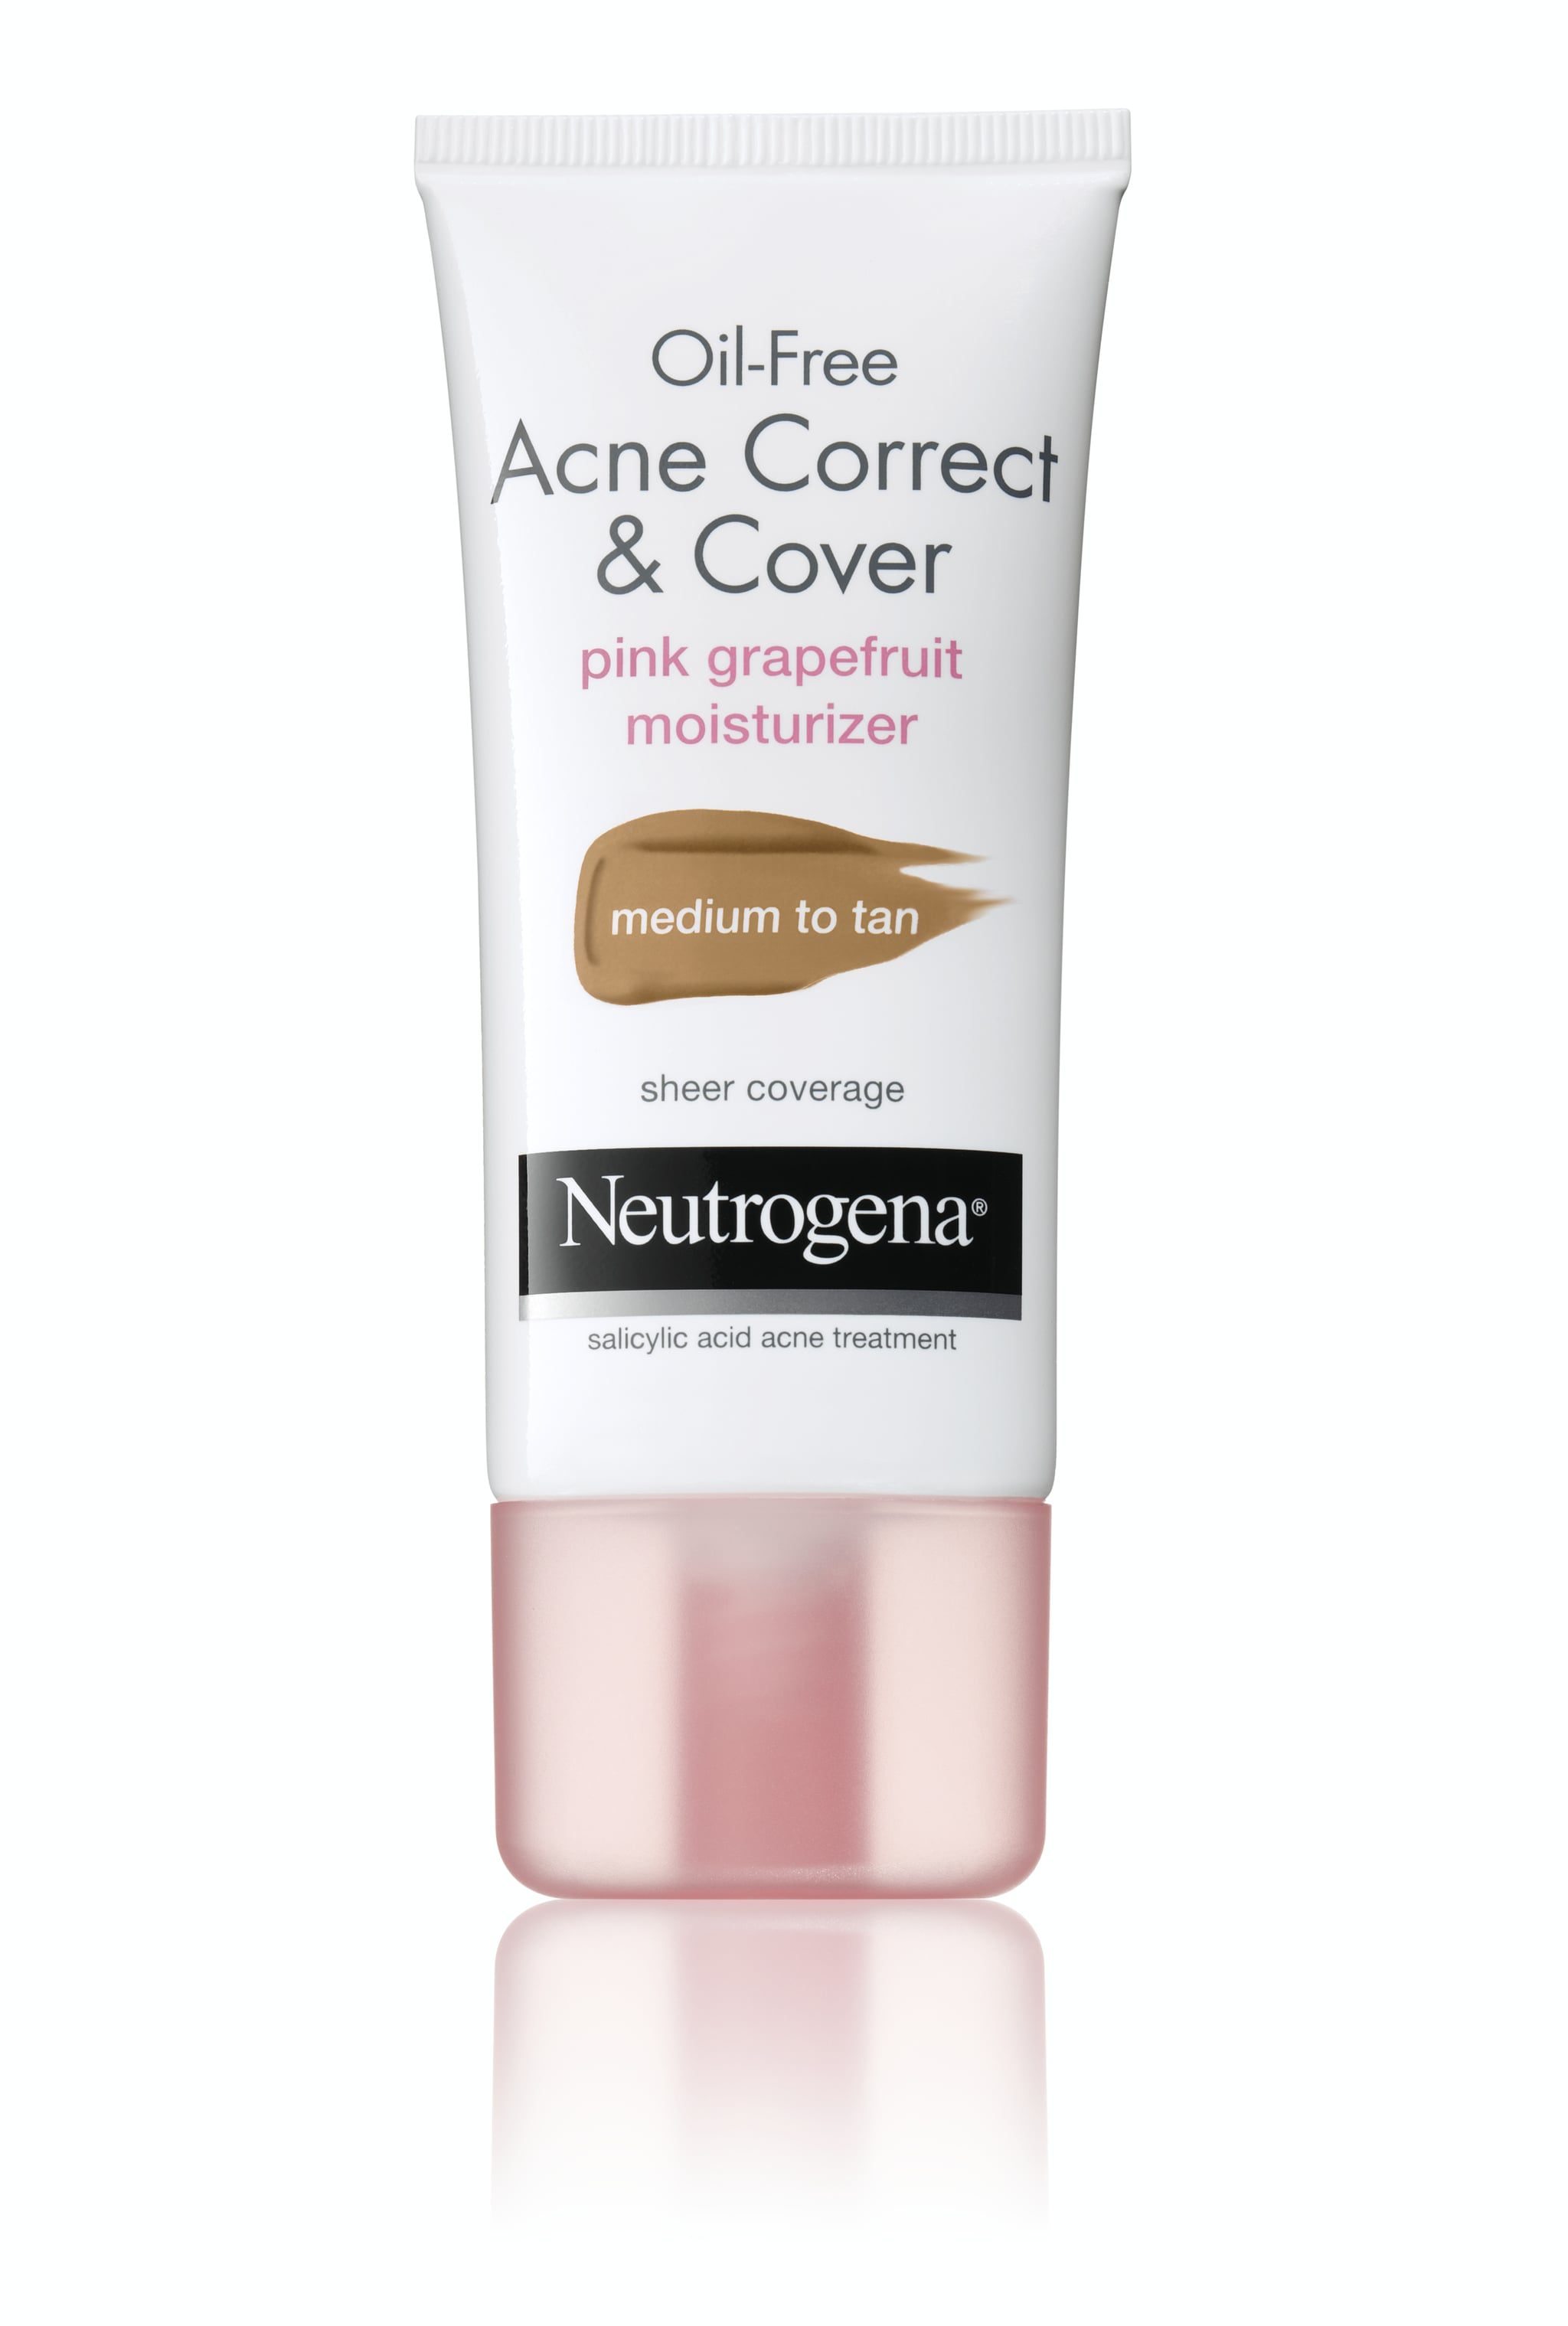 Oil-Free Acne Correct & Cover Pink Grapefruit Moisturizer by Neutrogena #20